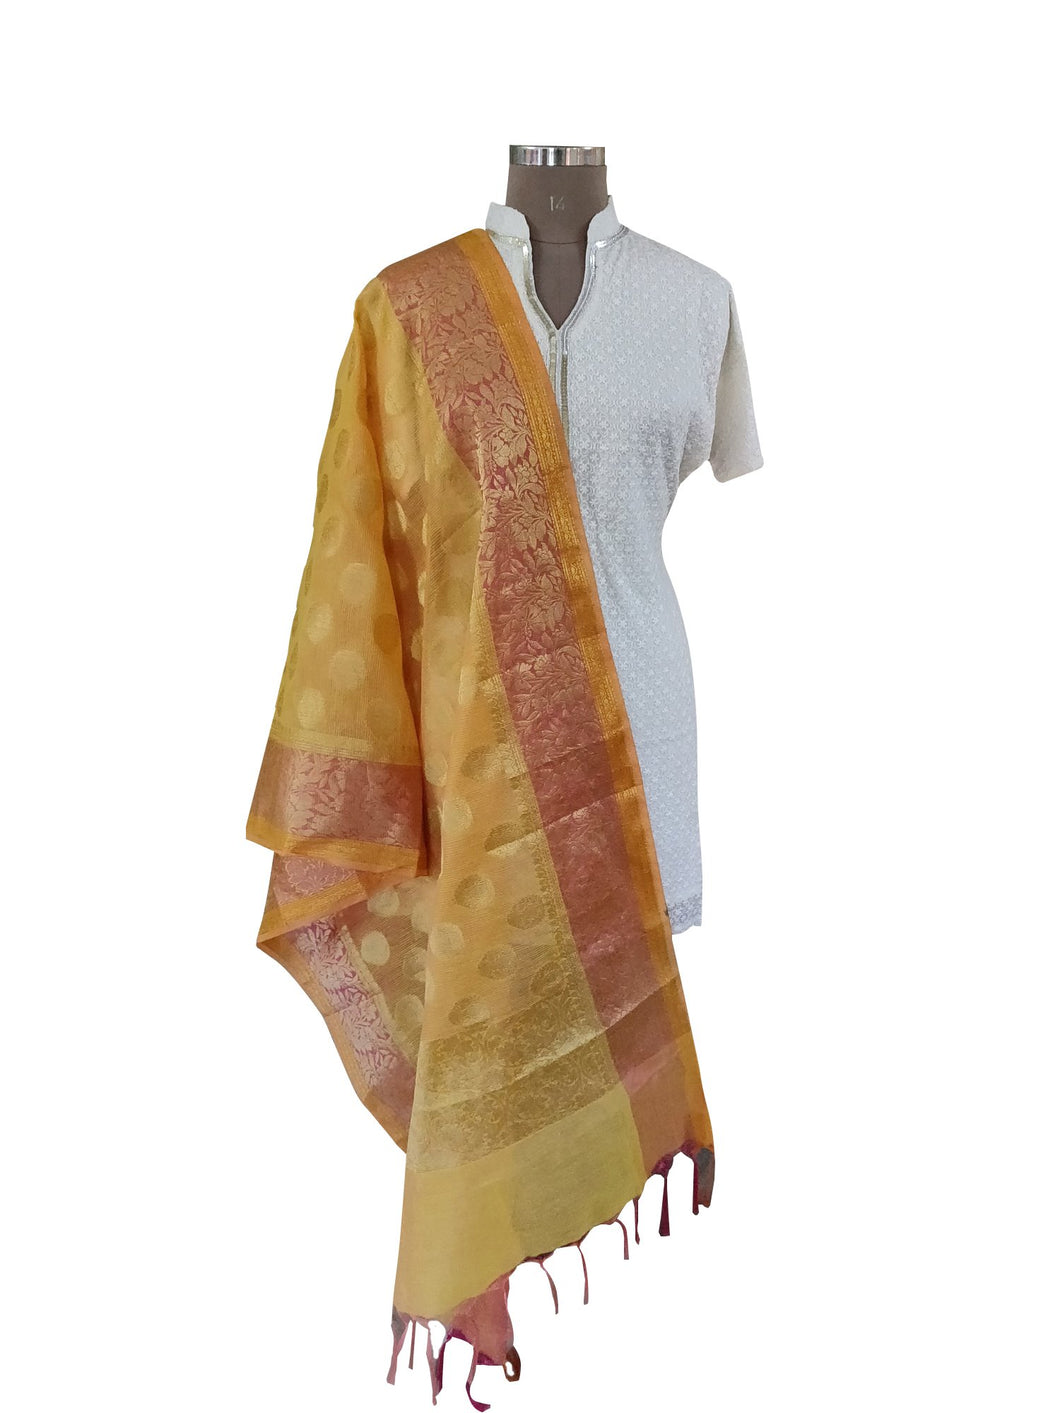 Benaras Kota Cotton Weaven Dupatta (Yellow_BKCD04) - Ethnic's By Anvi Creations